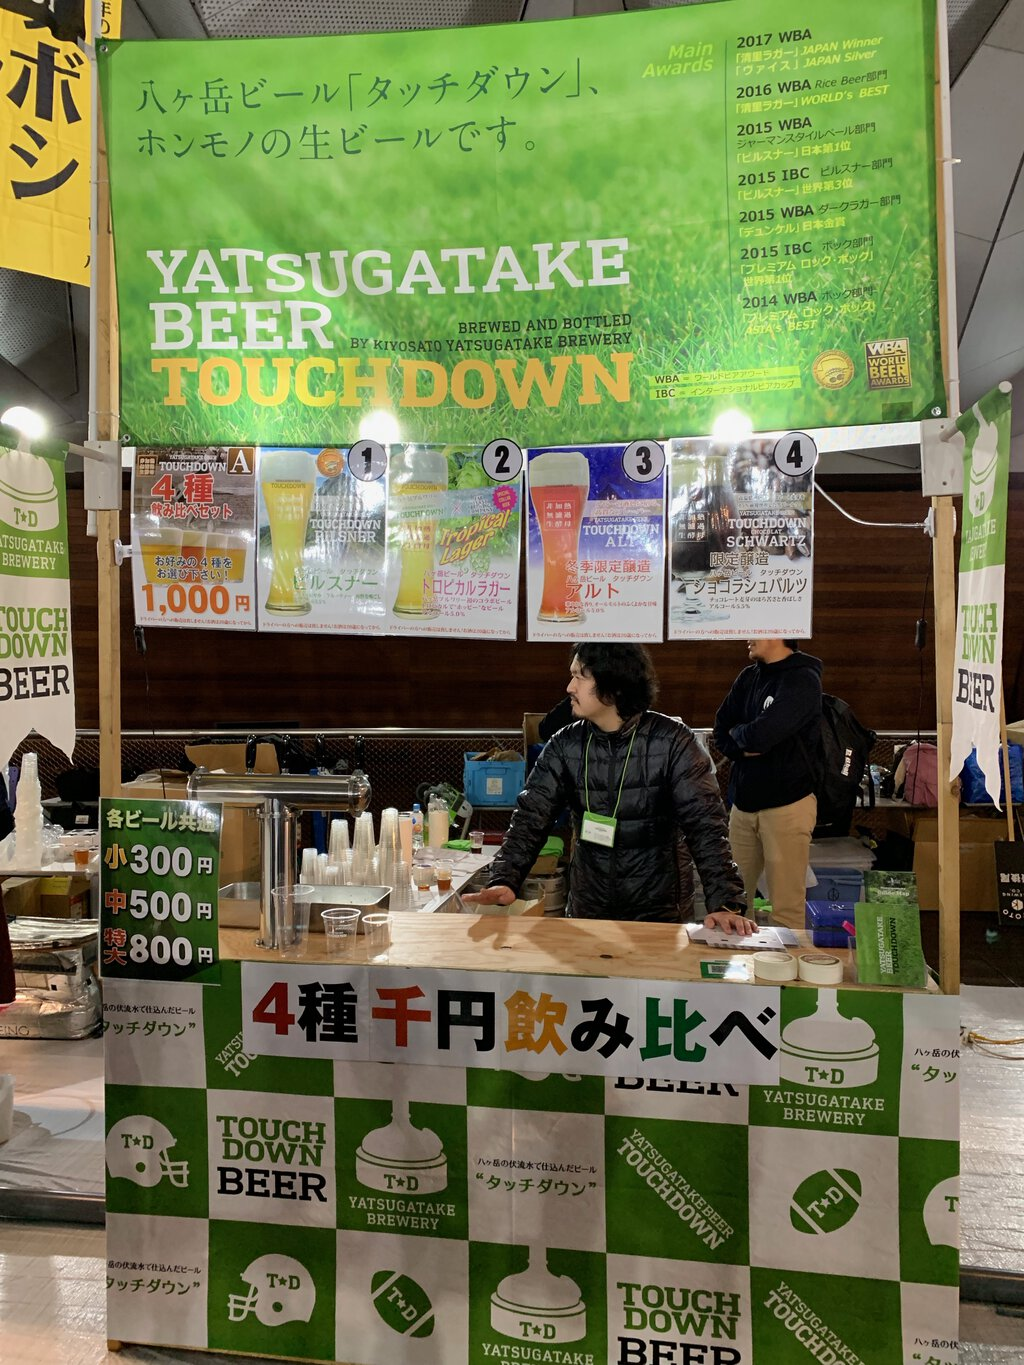 Yatsugatake Beer Touchdown, Japan Brewers Cup 2019